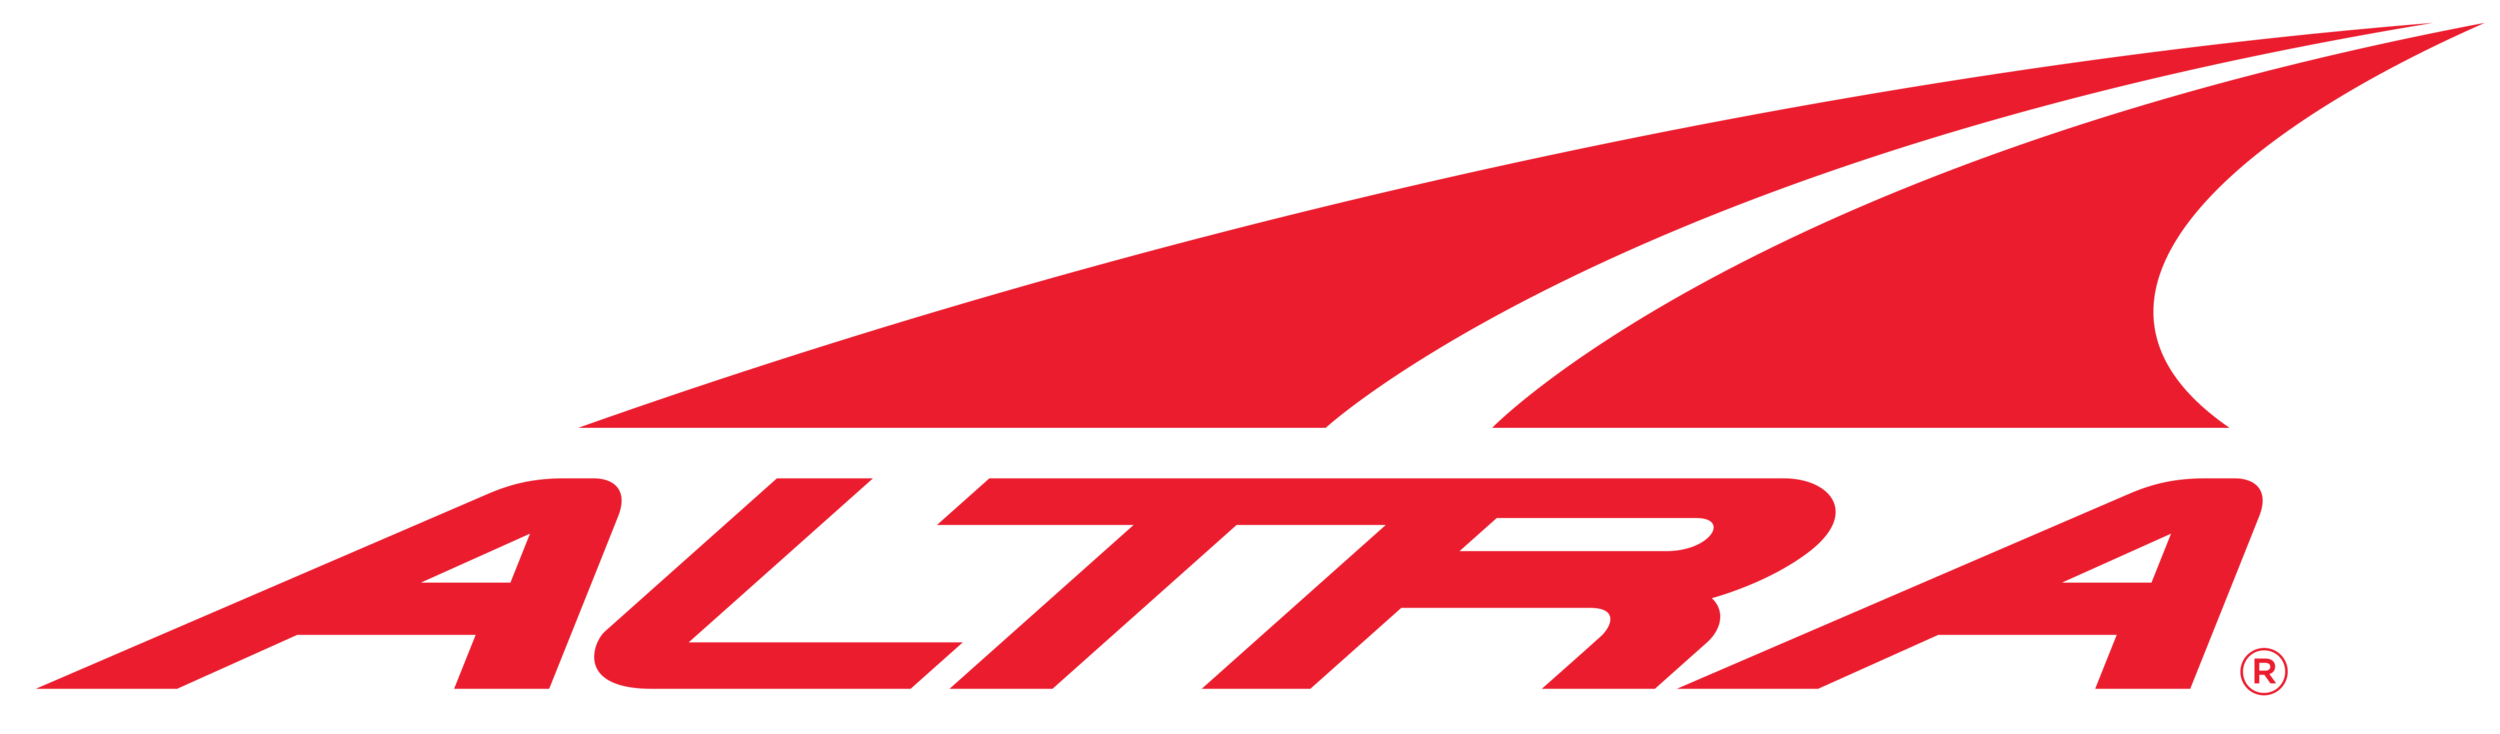 Altra Registered_Red.png